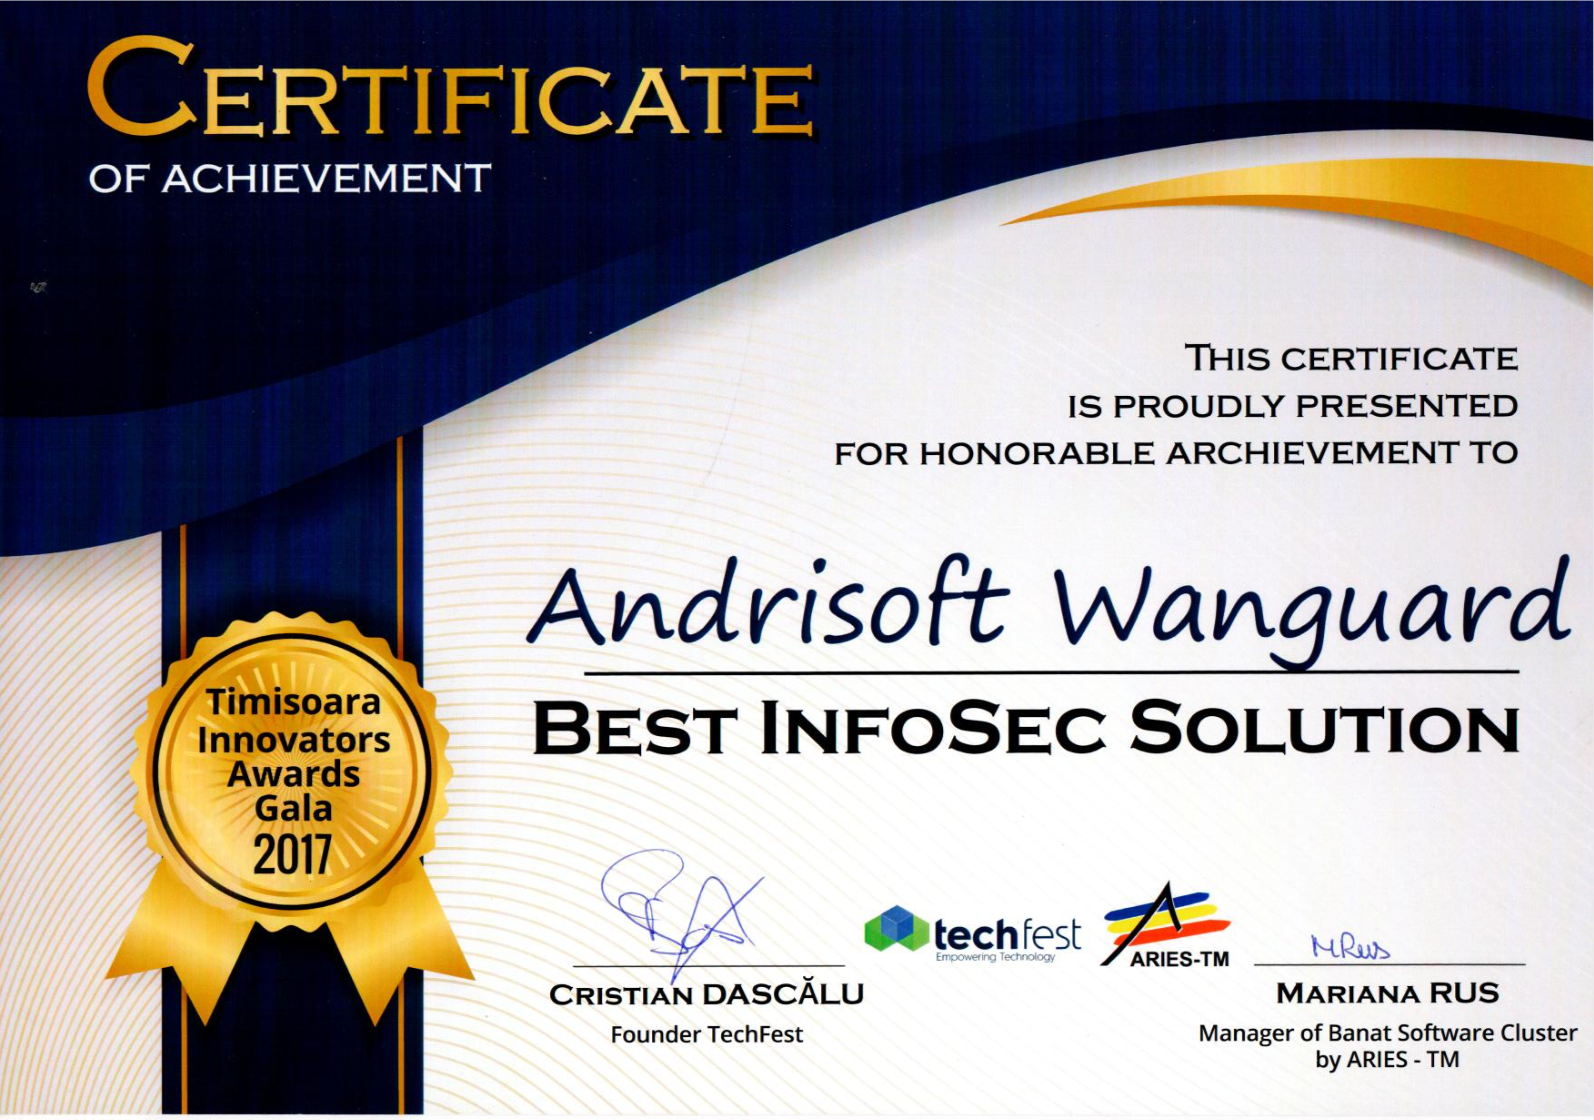 Andrisoft Wanguard won Best InfoSec Solution award